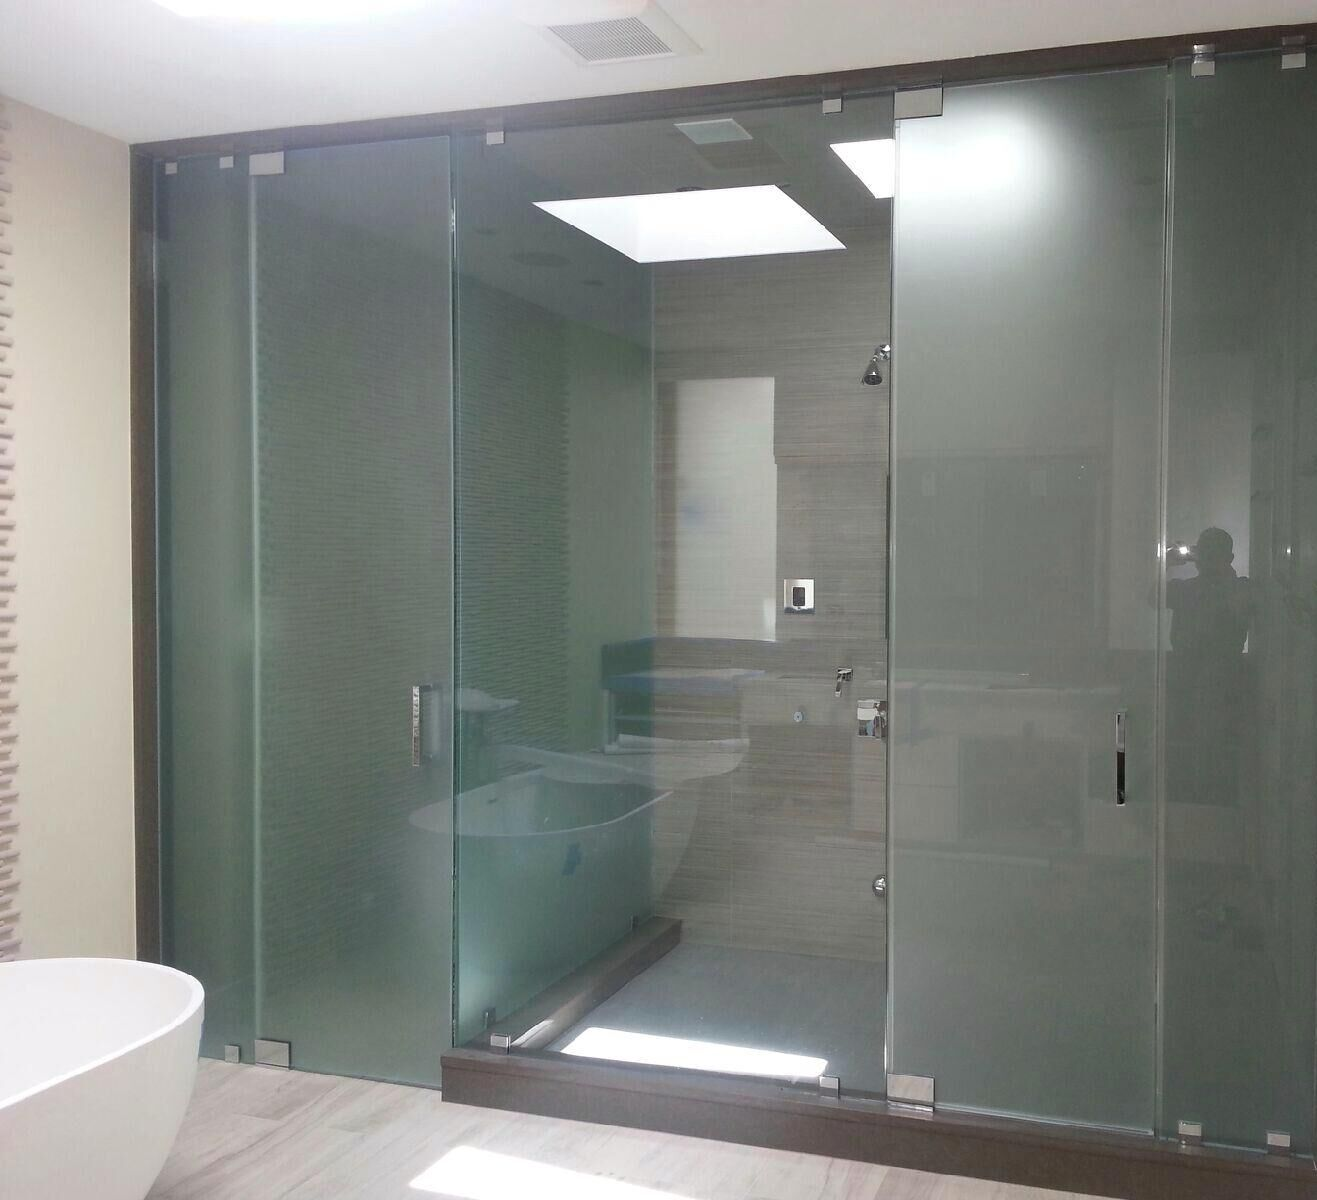 Frameless Shower & Toilet Area combo 6.6.14-min